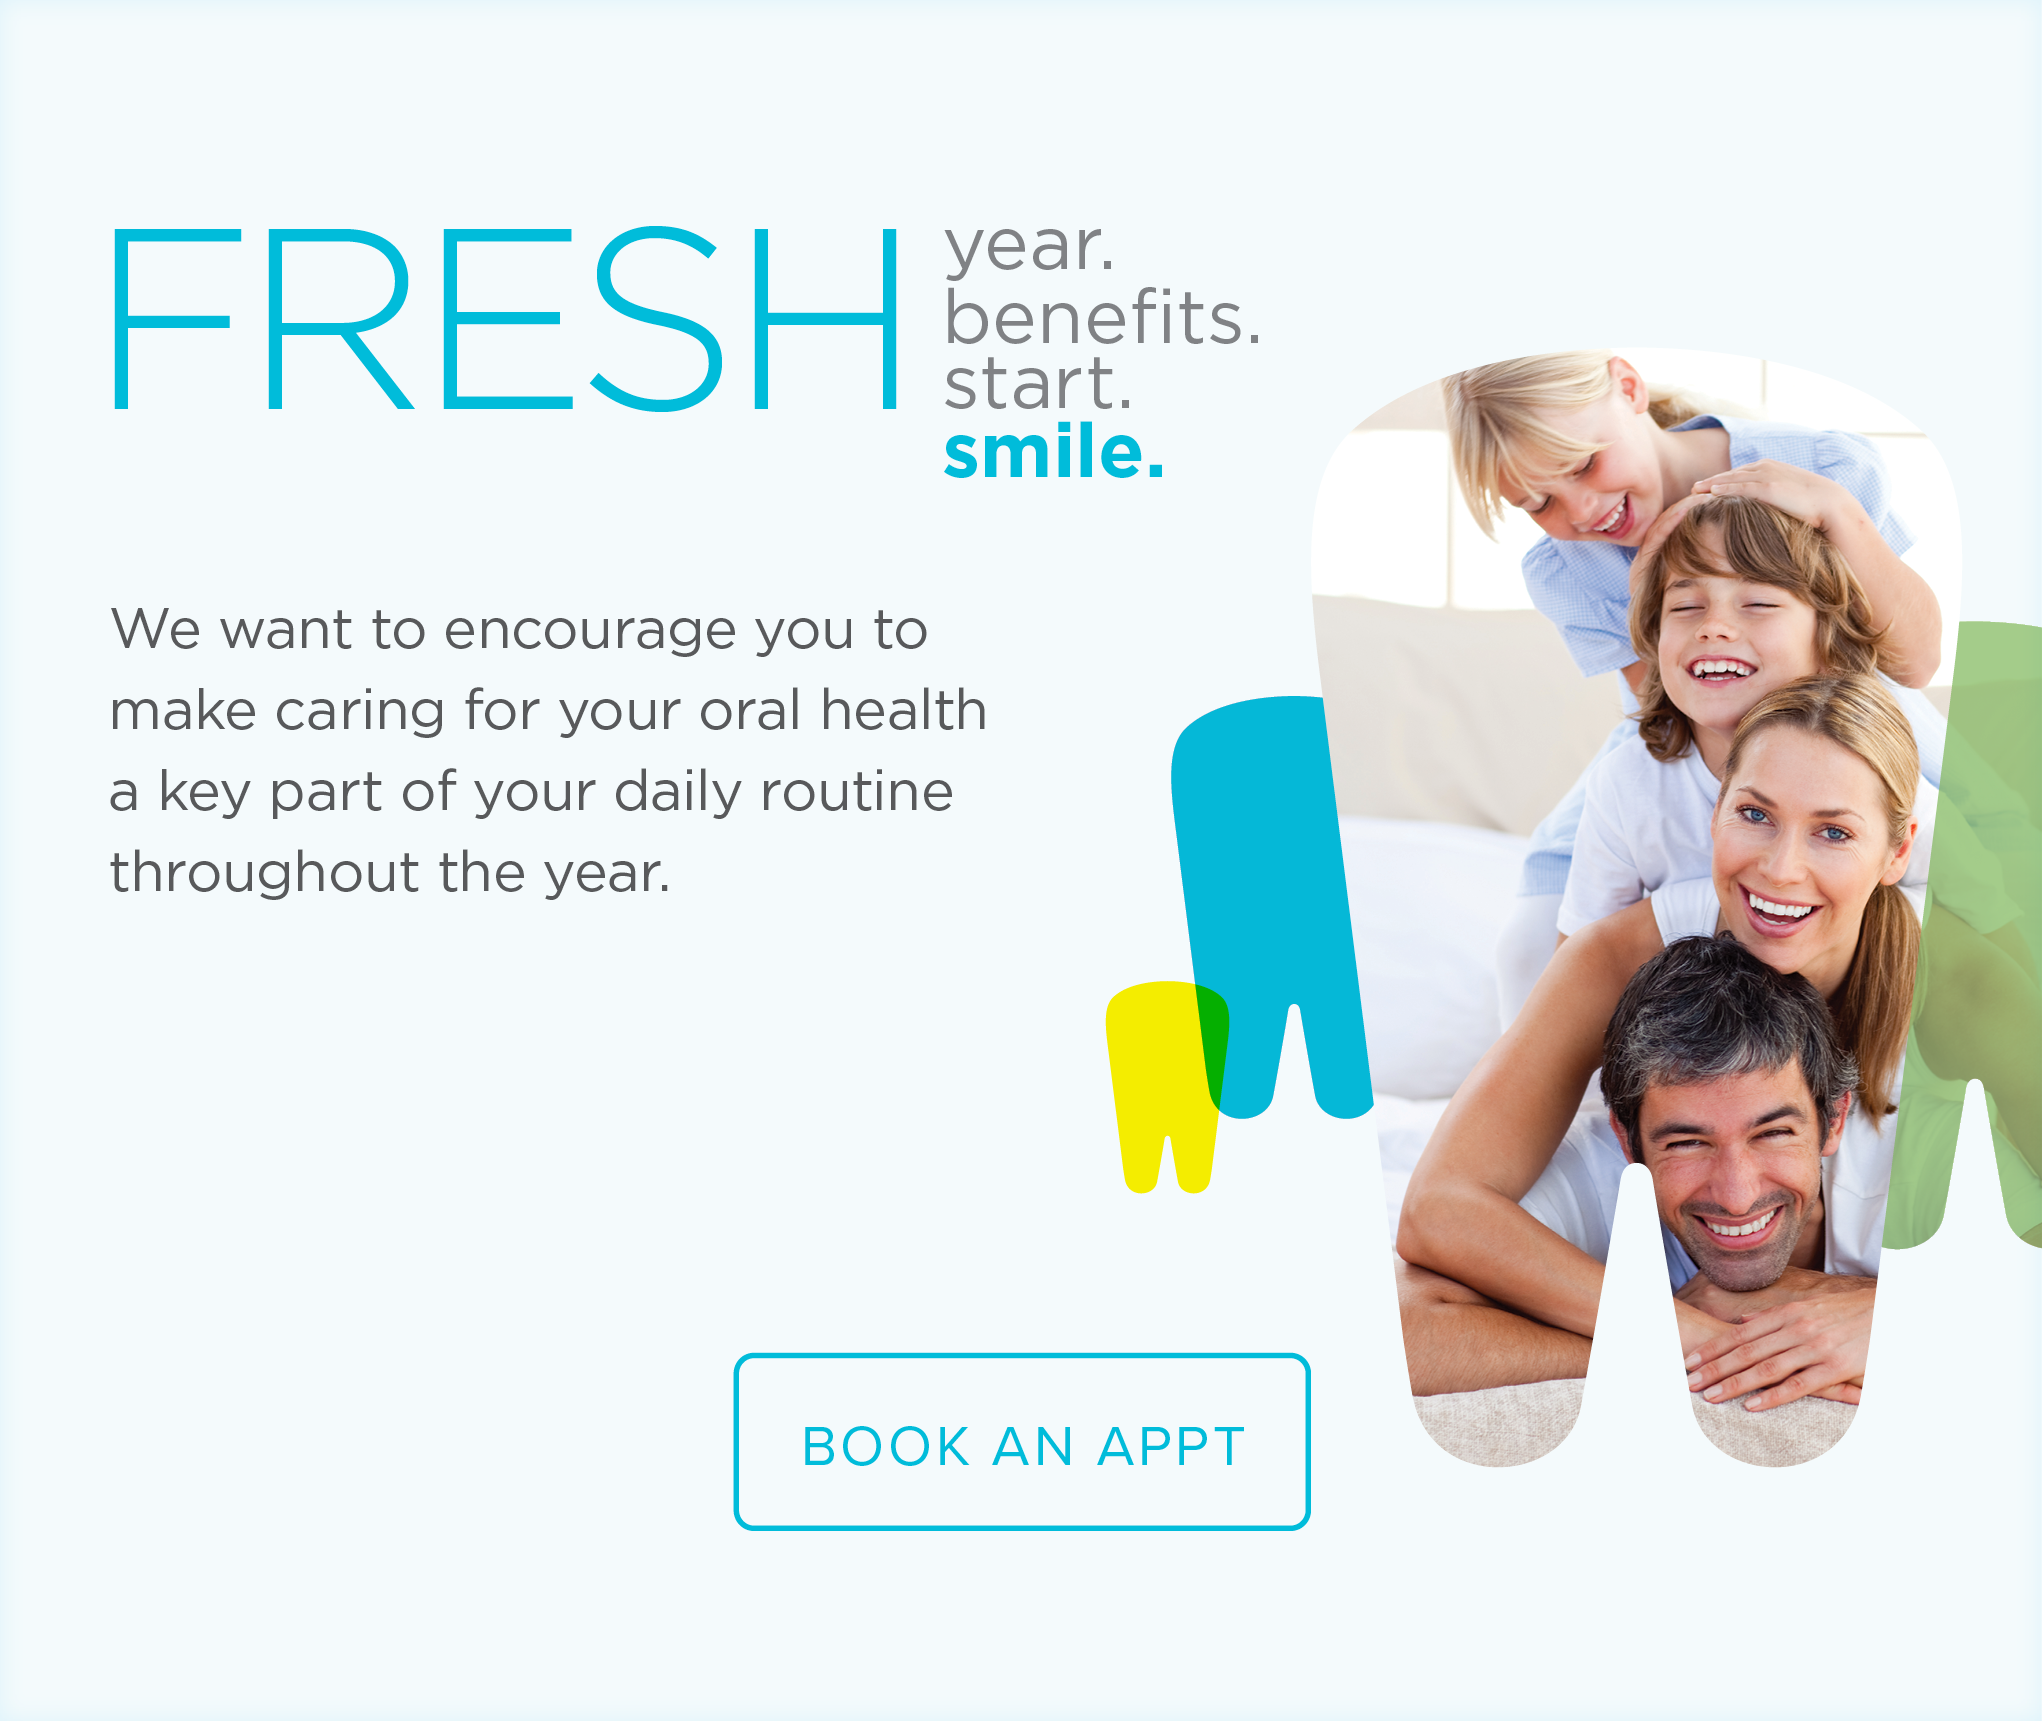 Rancho Cordova Dental Group and Orthodontics - Make the Most of Your Benefits